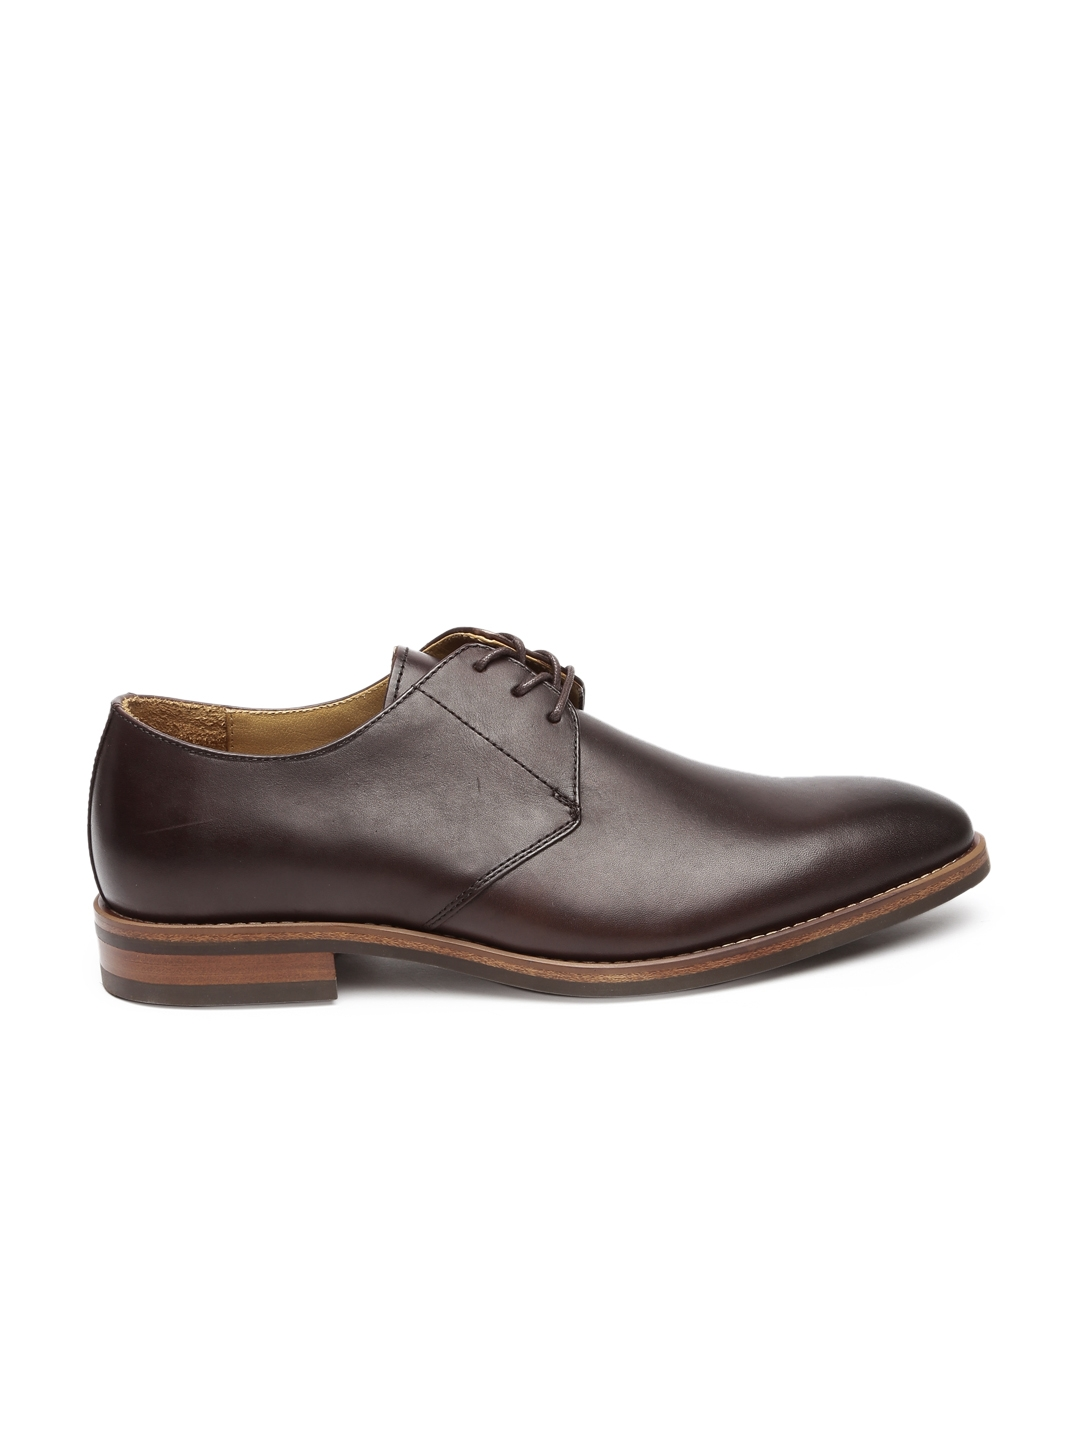 buy aldo brown battolla leather derby shoes formal